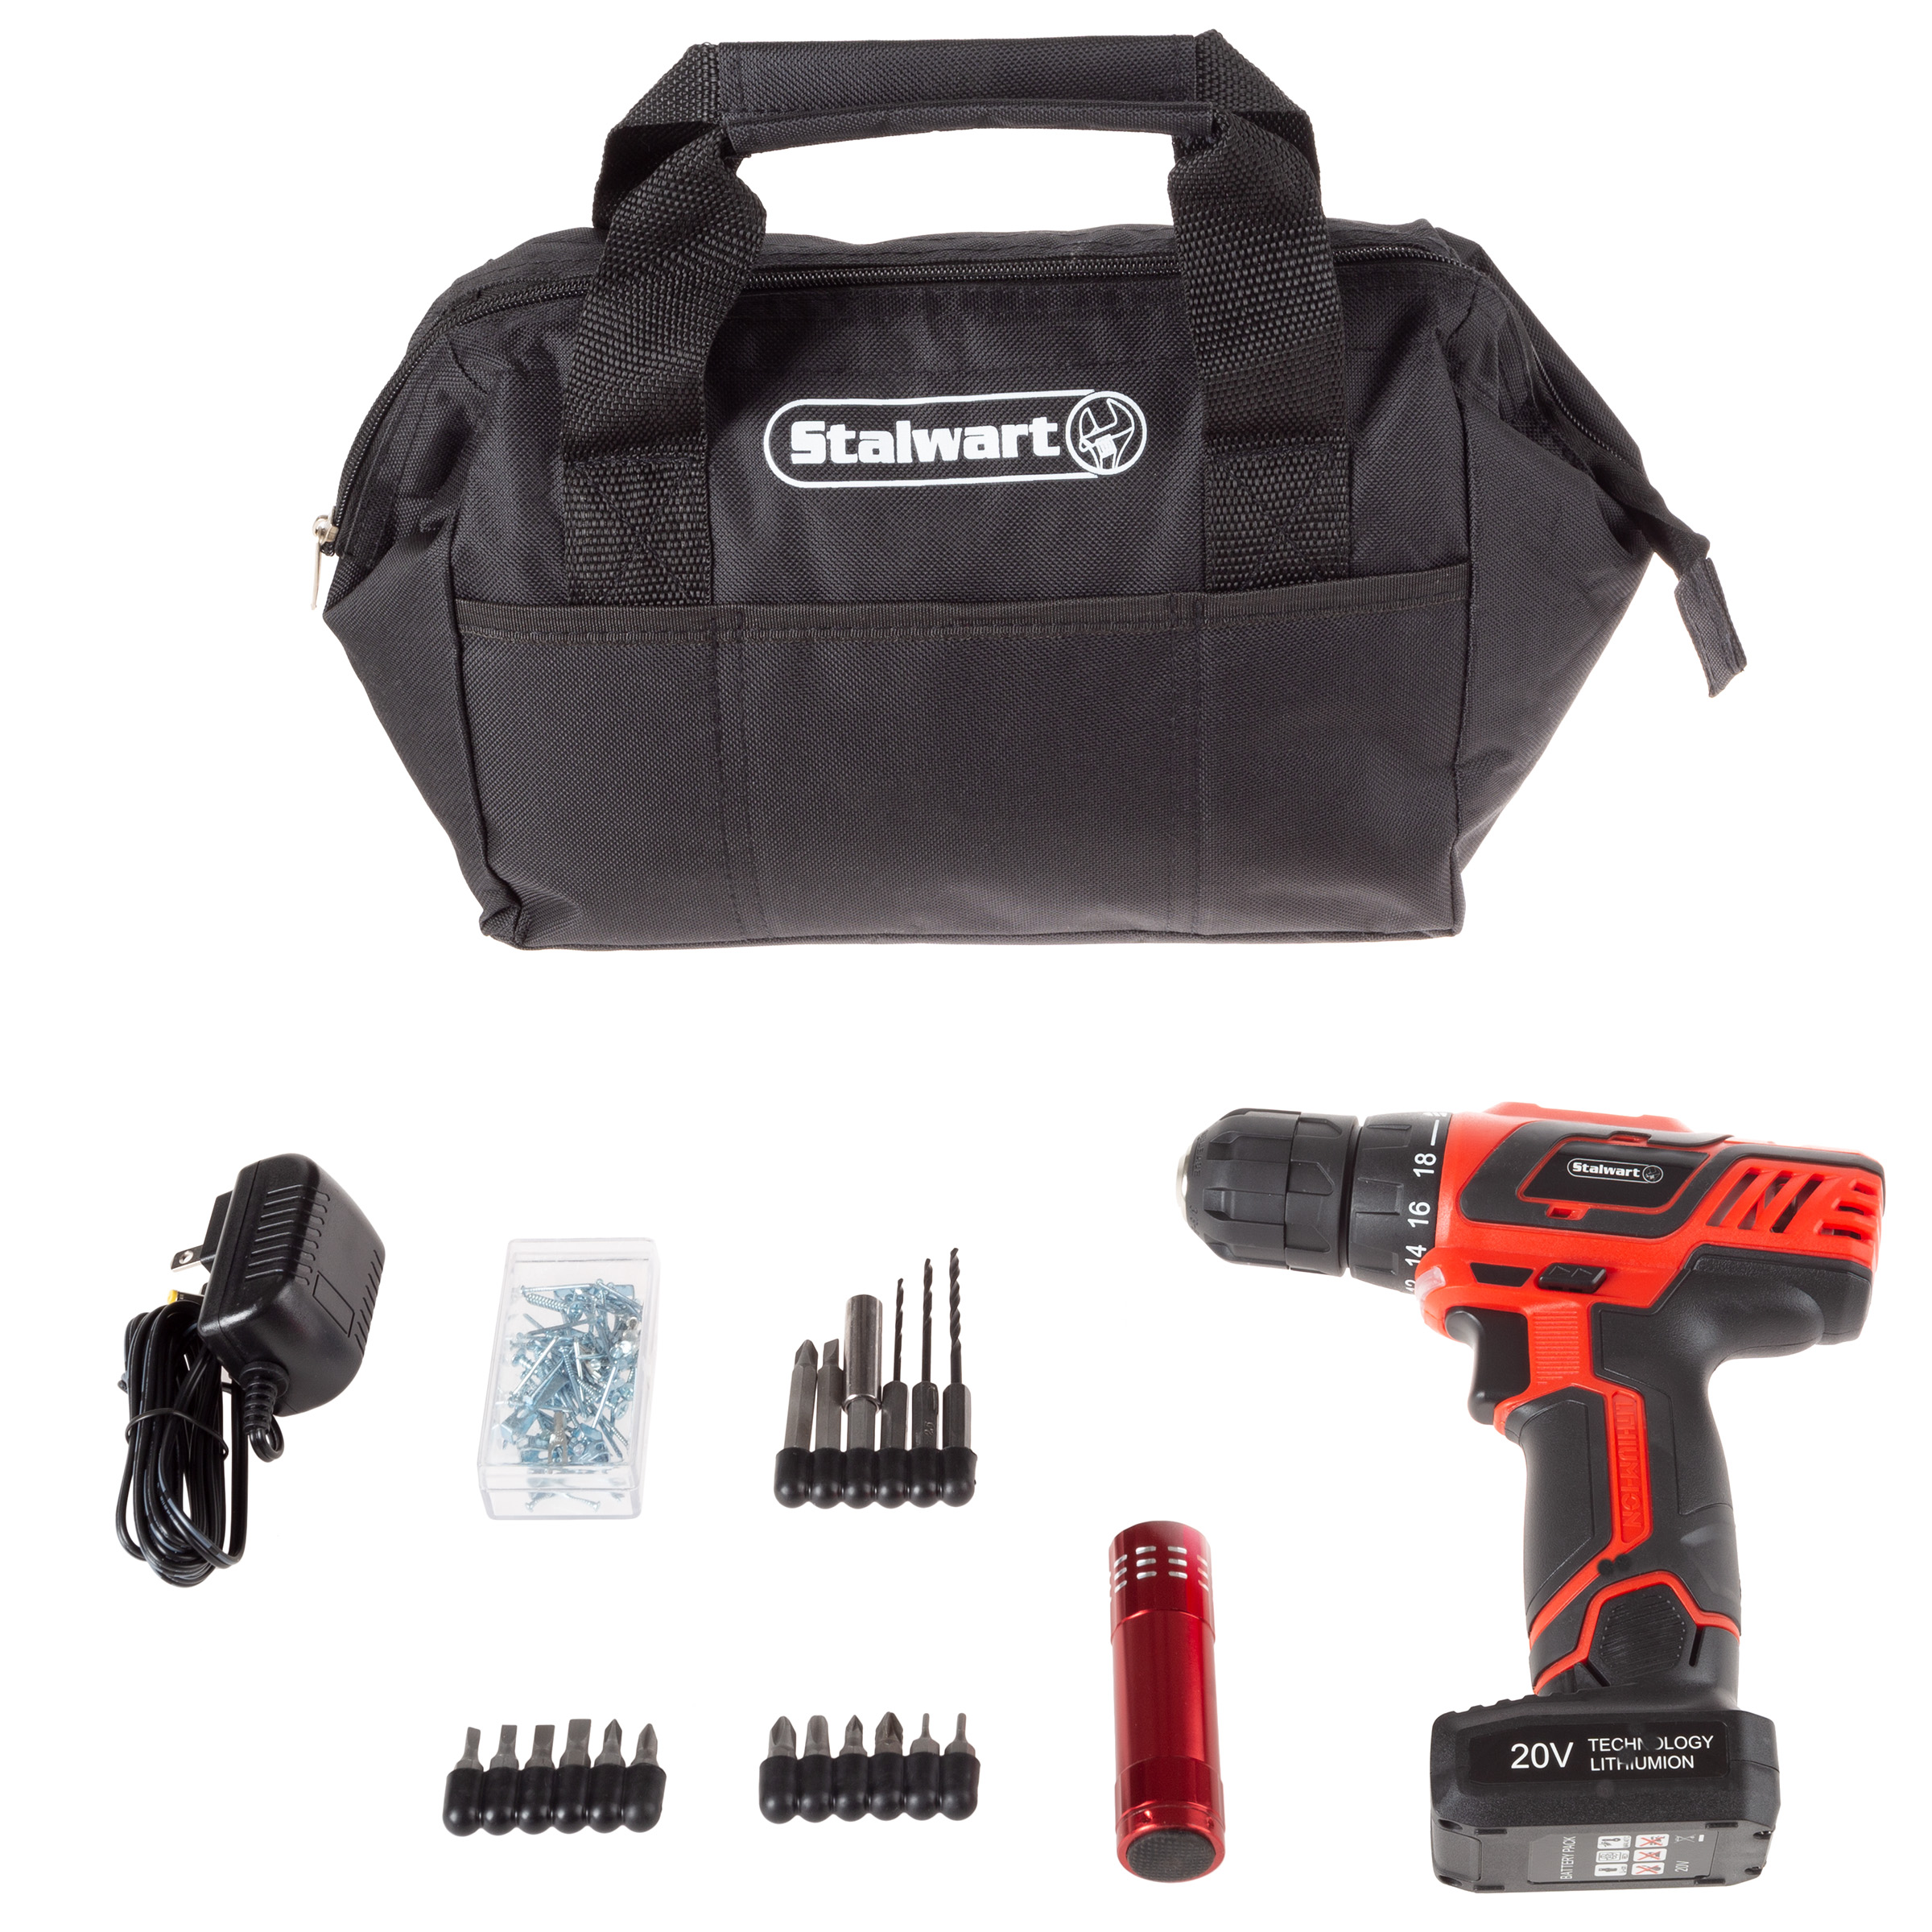 20v Cordless Drill With Rechargeable Battery And 101 Piece Accessory Set By Stalwart Walmart Com Walmart Com